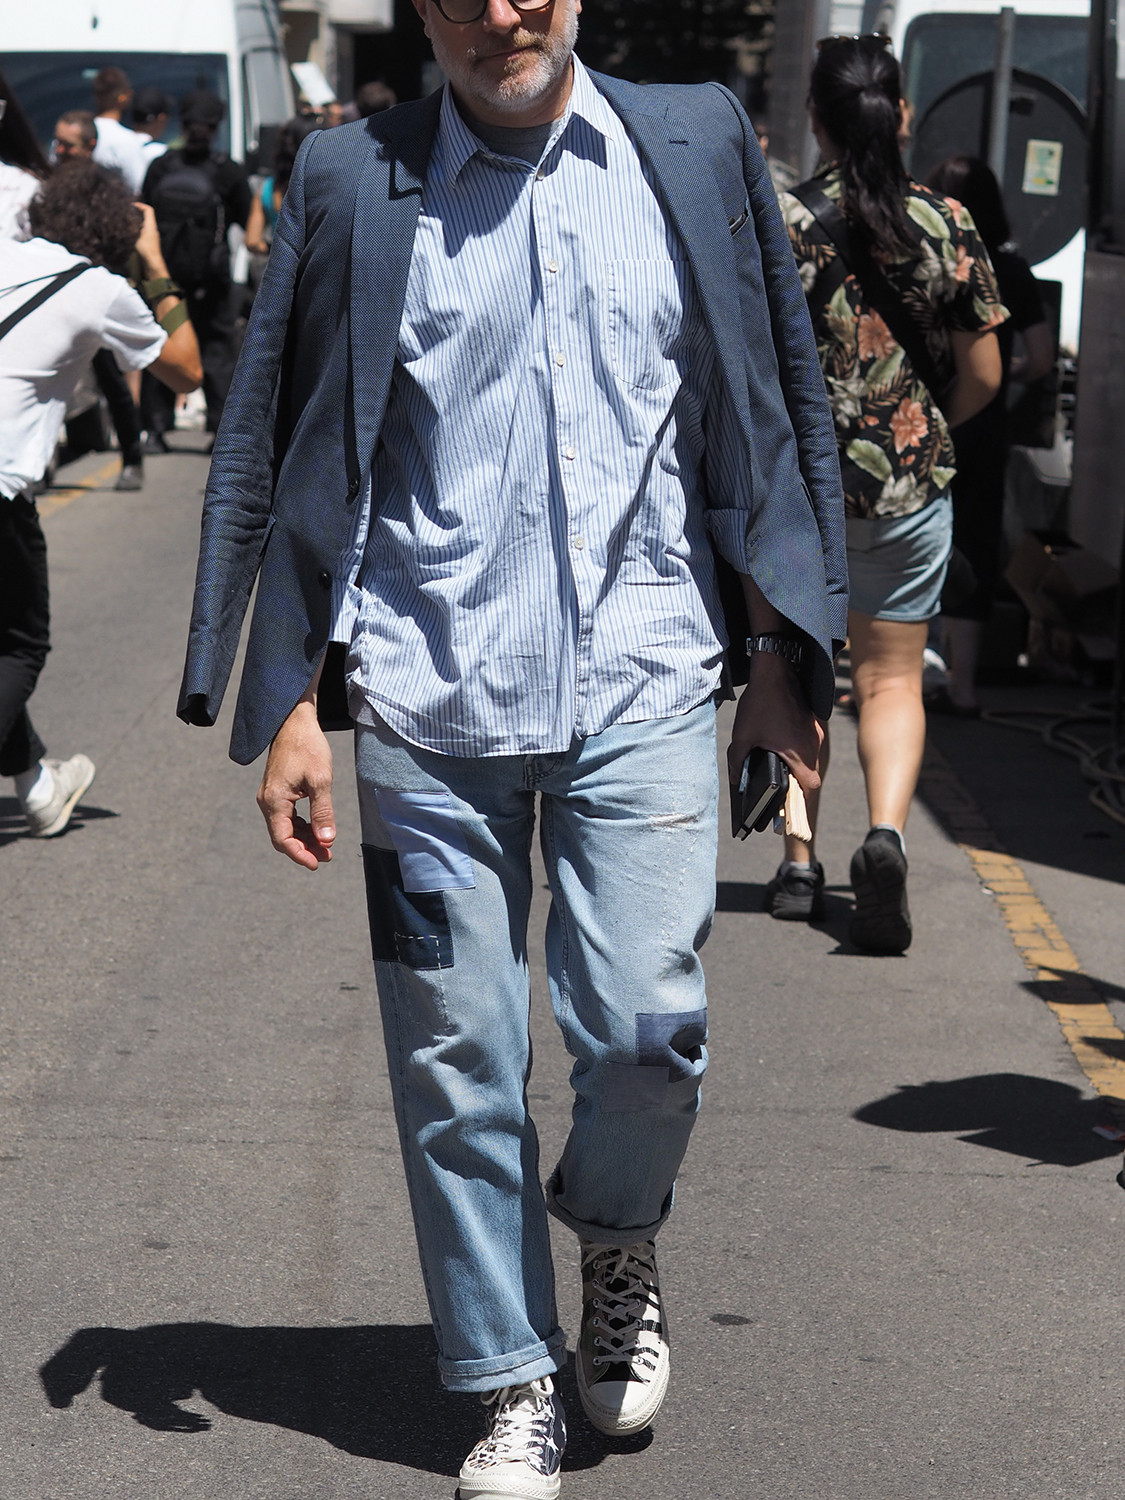 Men's outfit idea for 2021 with navy textured blazer, blue striped casual shirt, light blue jeans, converse. Suitable for spring and autumn.